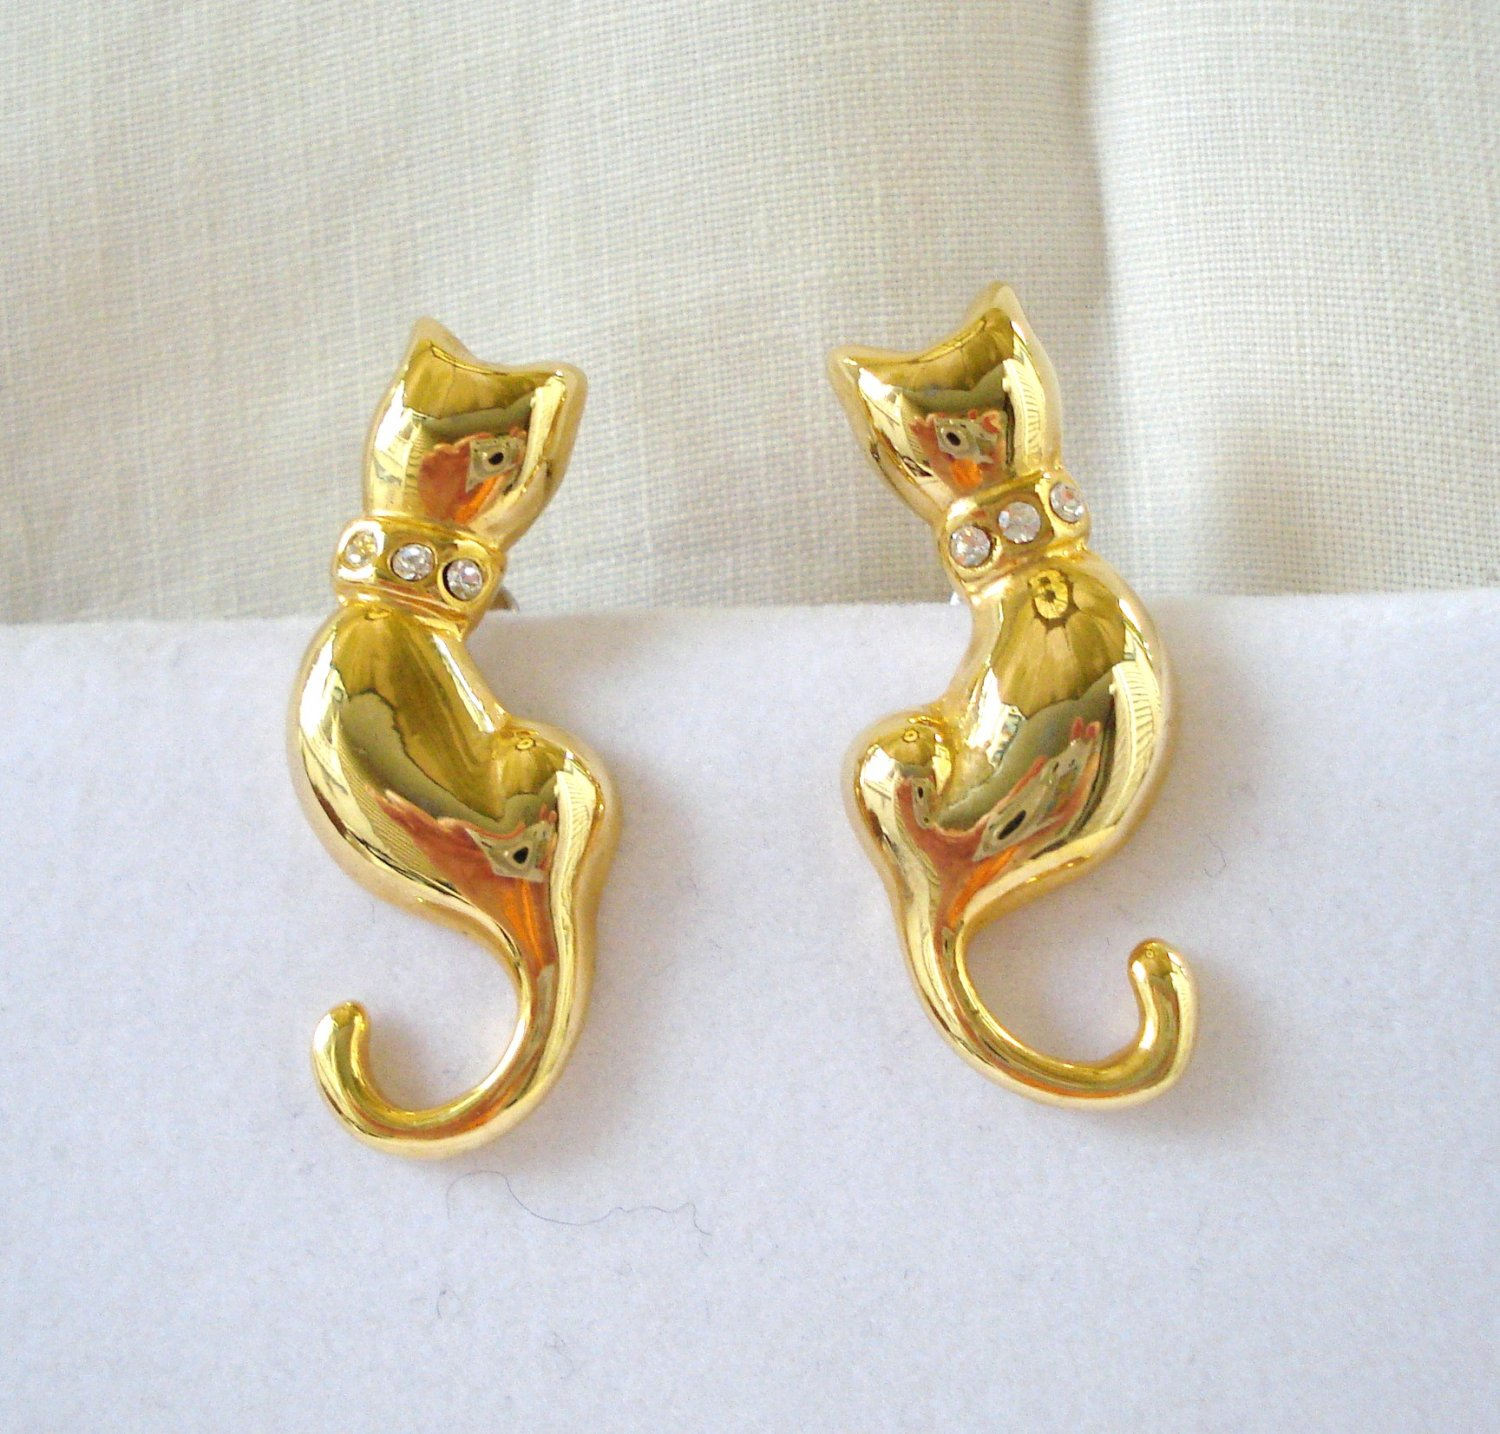 Gold tone cat earrings curled tails rhinestone collars pierced cm1452